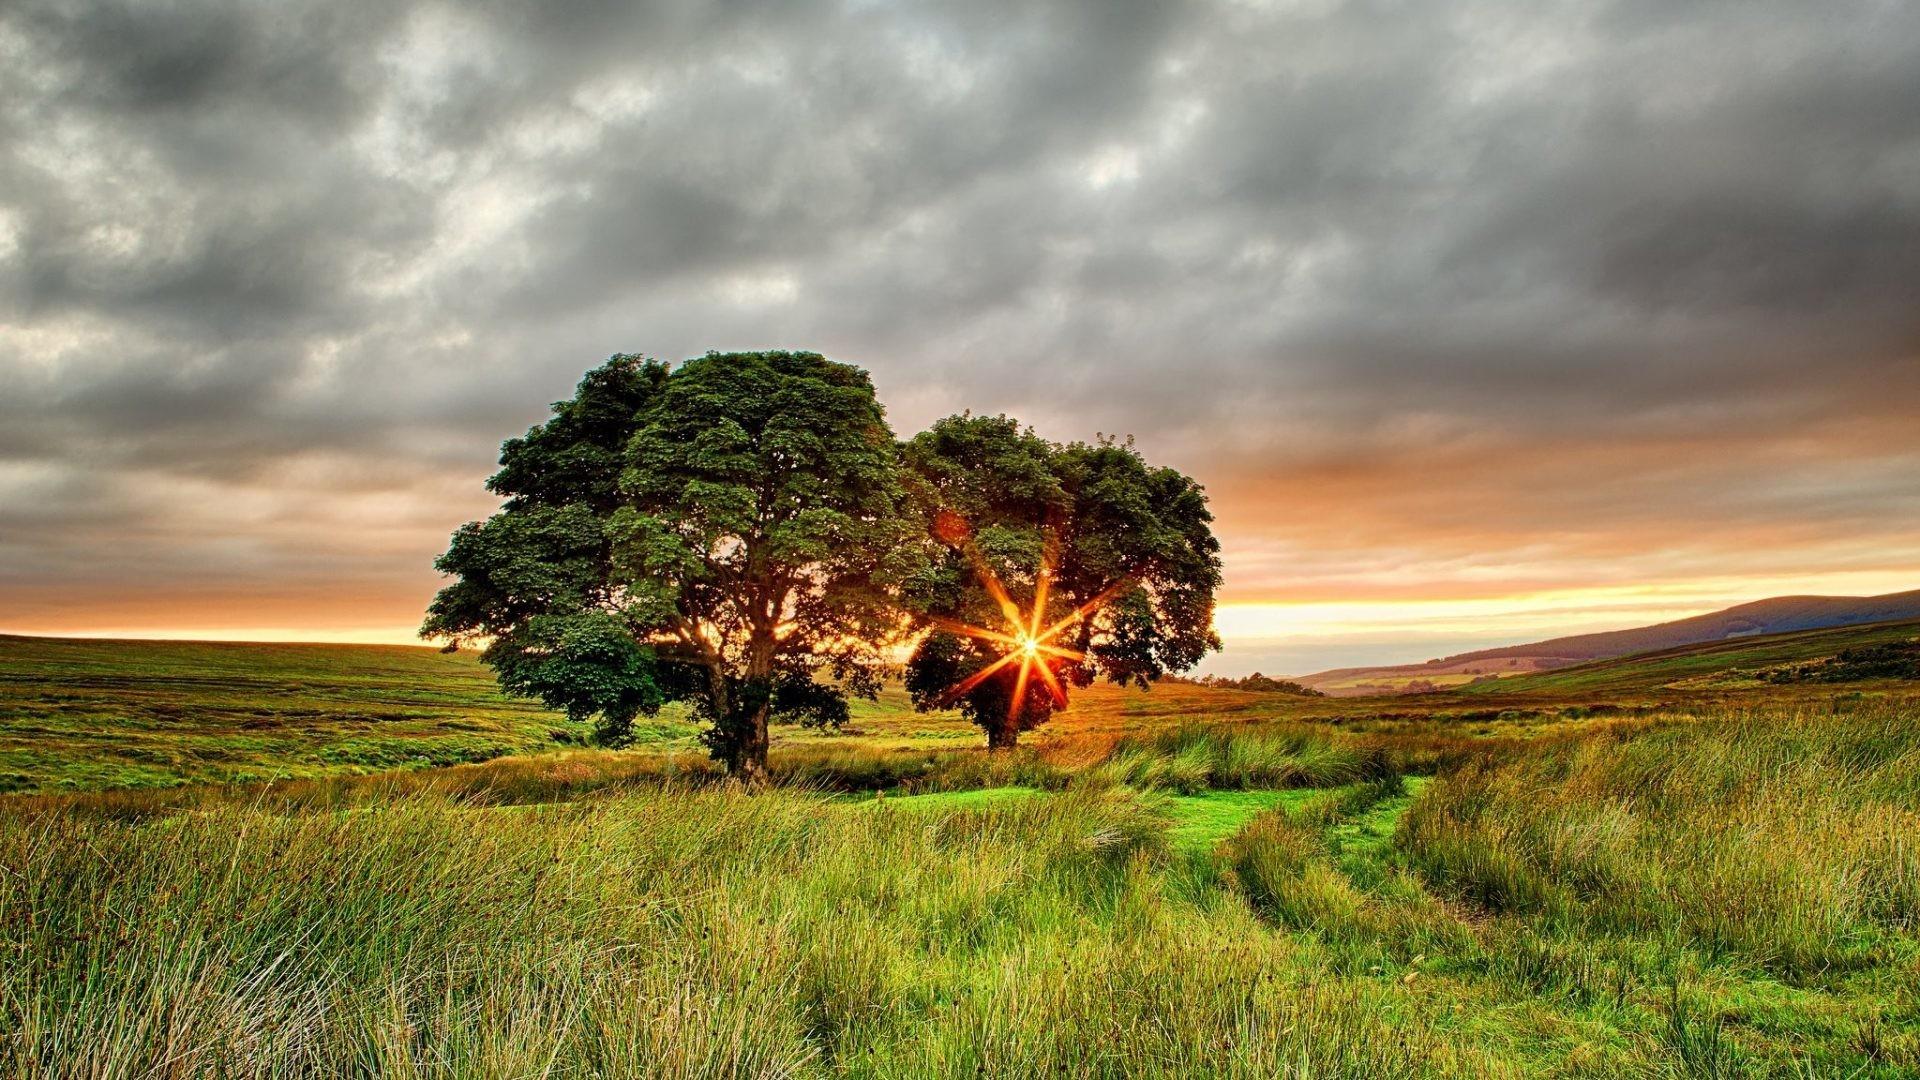 1920x1080 Ireland Tag - Summer Trees Ireland Field Two Nature Wallpaper For Mobile  Screen for HD 16